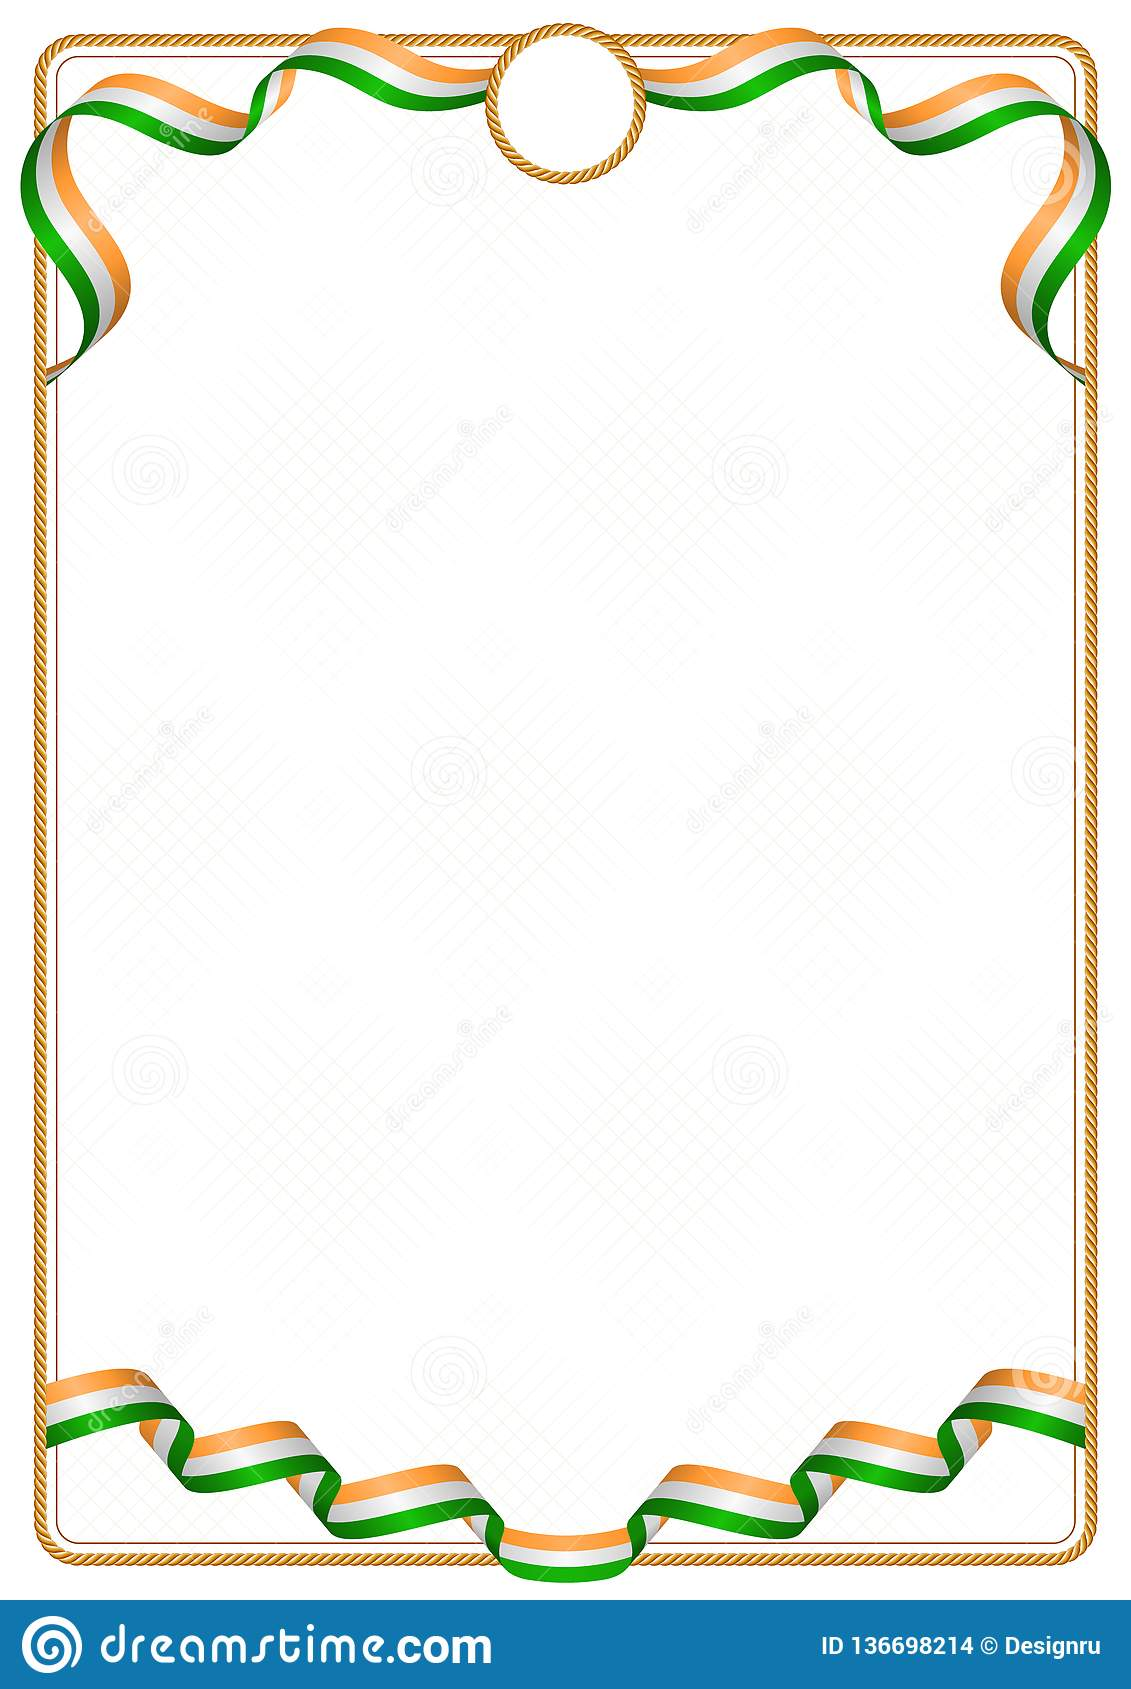 frame and border of india colors flag stock vector